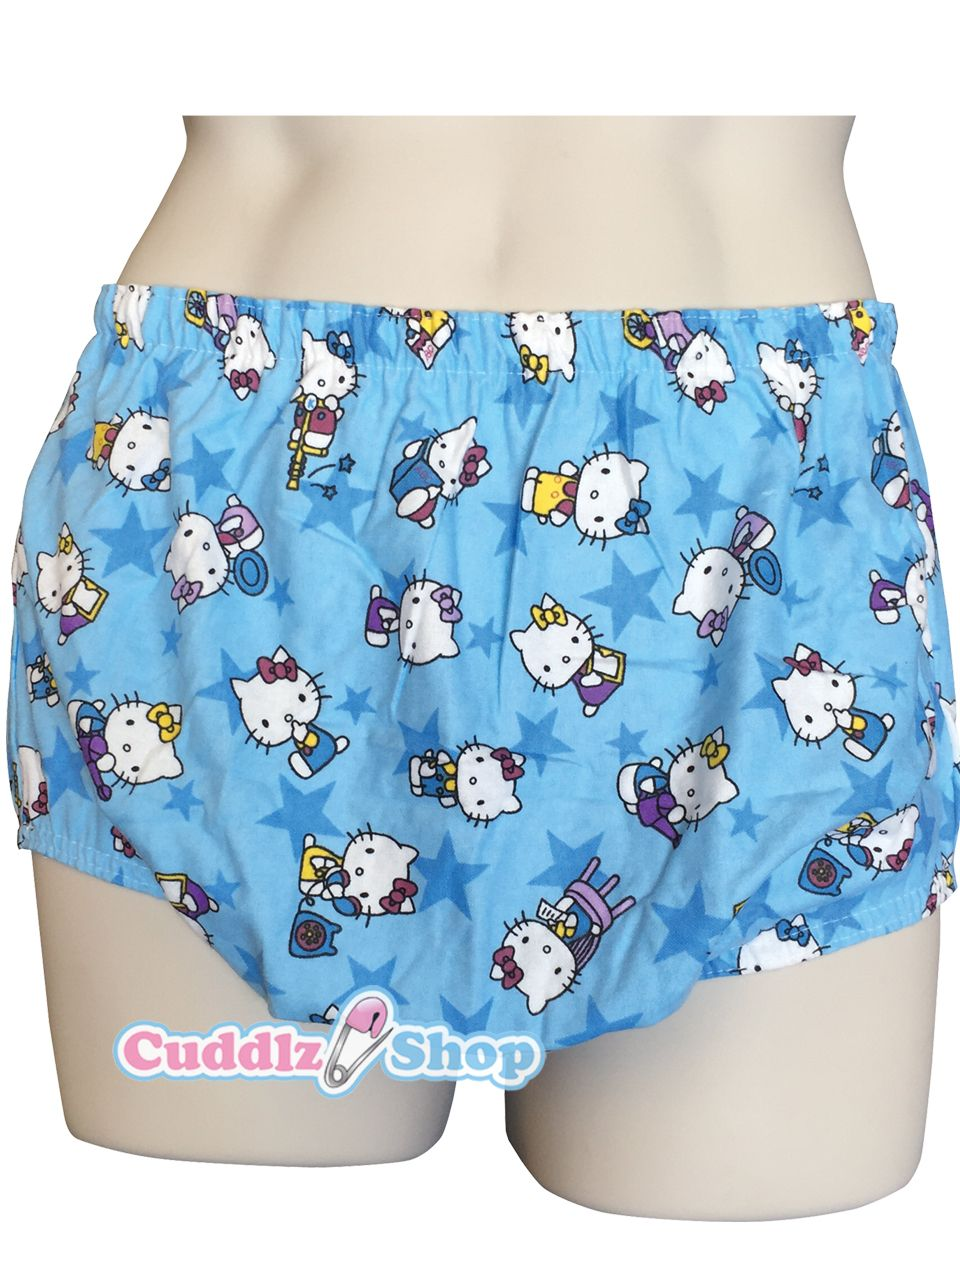 Blue Kitty Cat Print PVC Plastic And Cotton Pull Up Pants For Adults ABDL  Diaper Lovers And Adult Baby PVC Pants